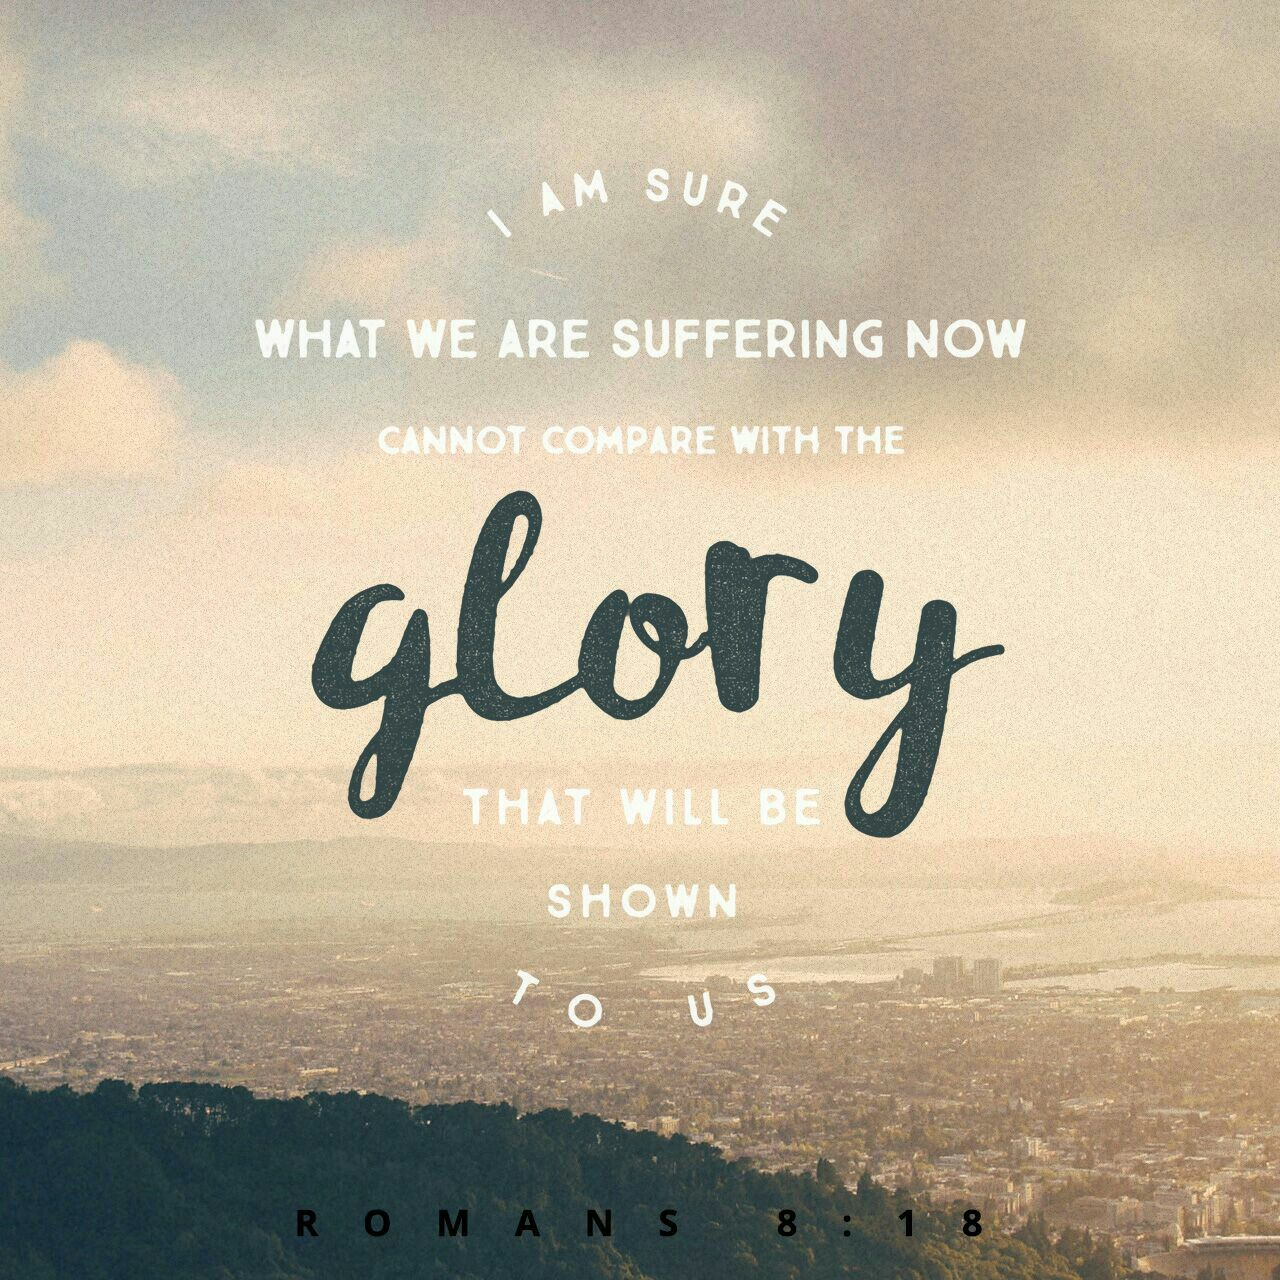 following christ in his sufferings is nothing compared to the glory